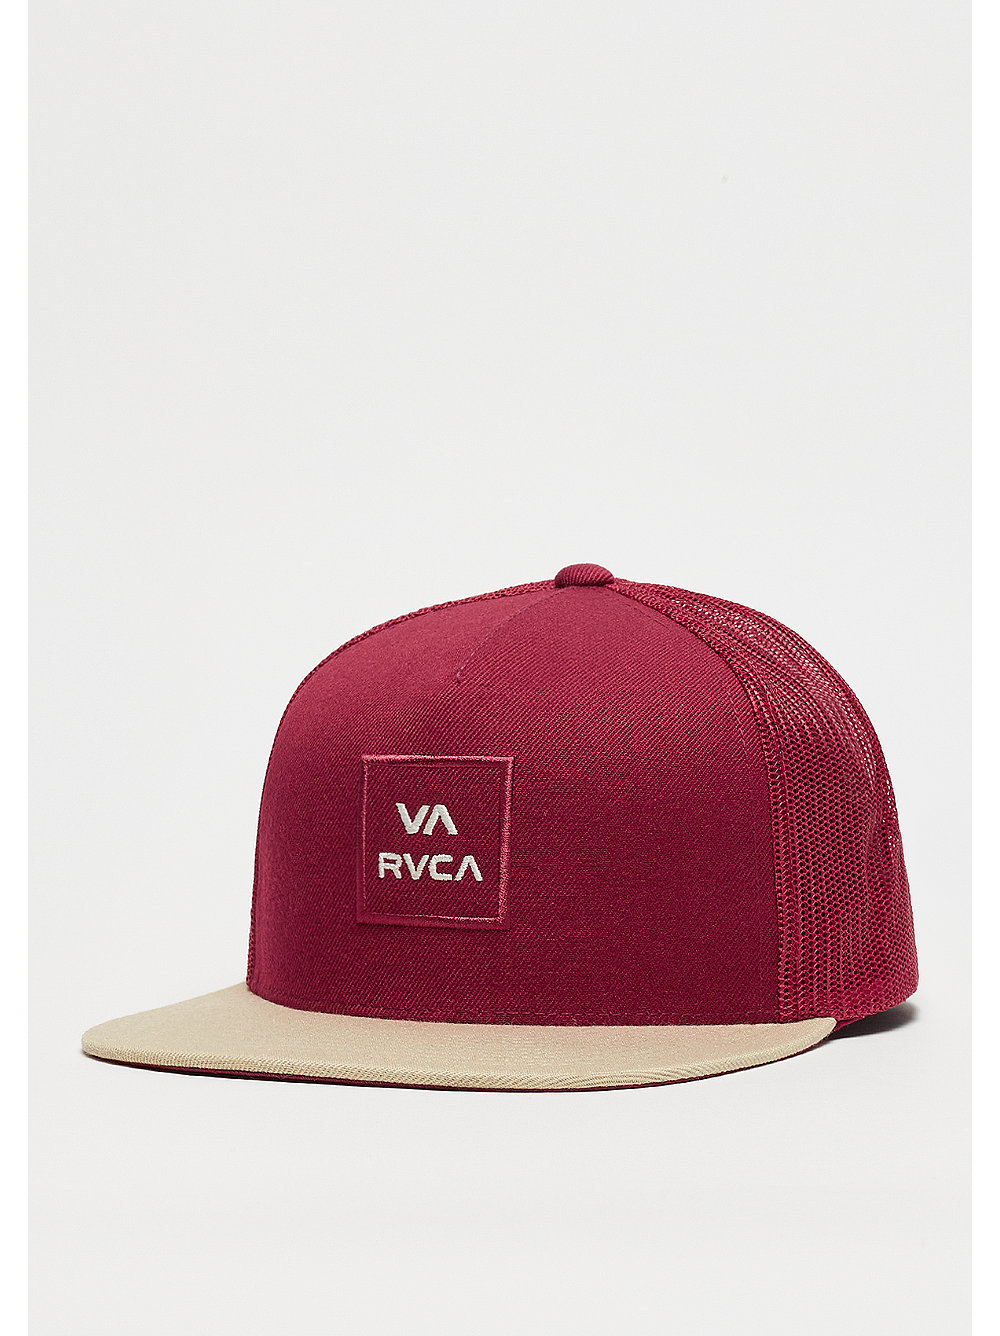 RVCA VA All The Way Ctiii rosewood